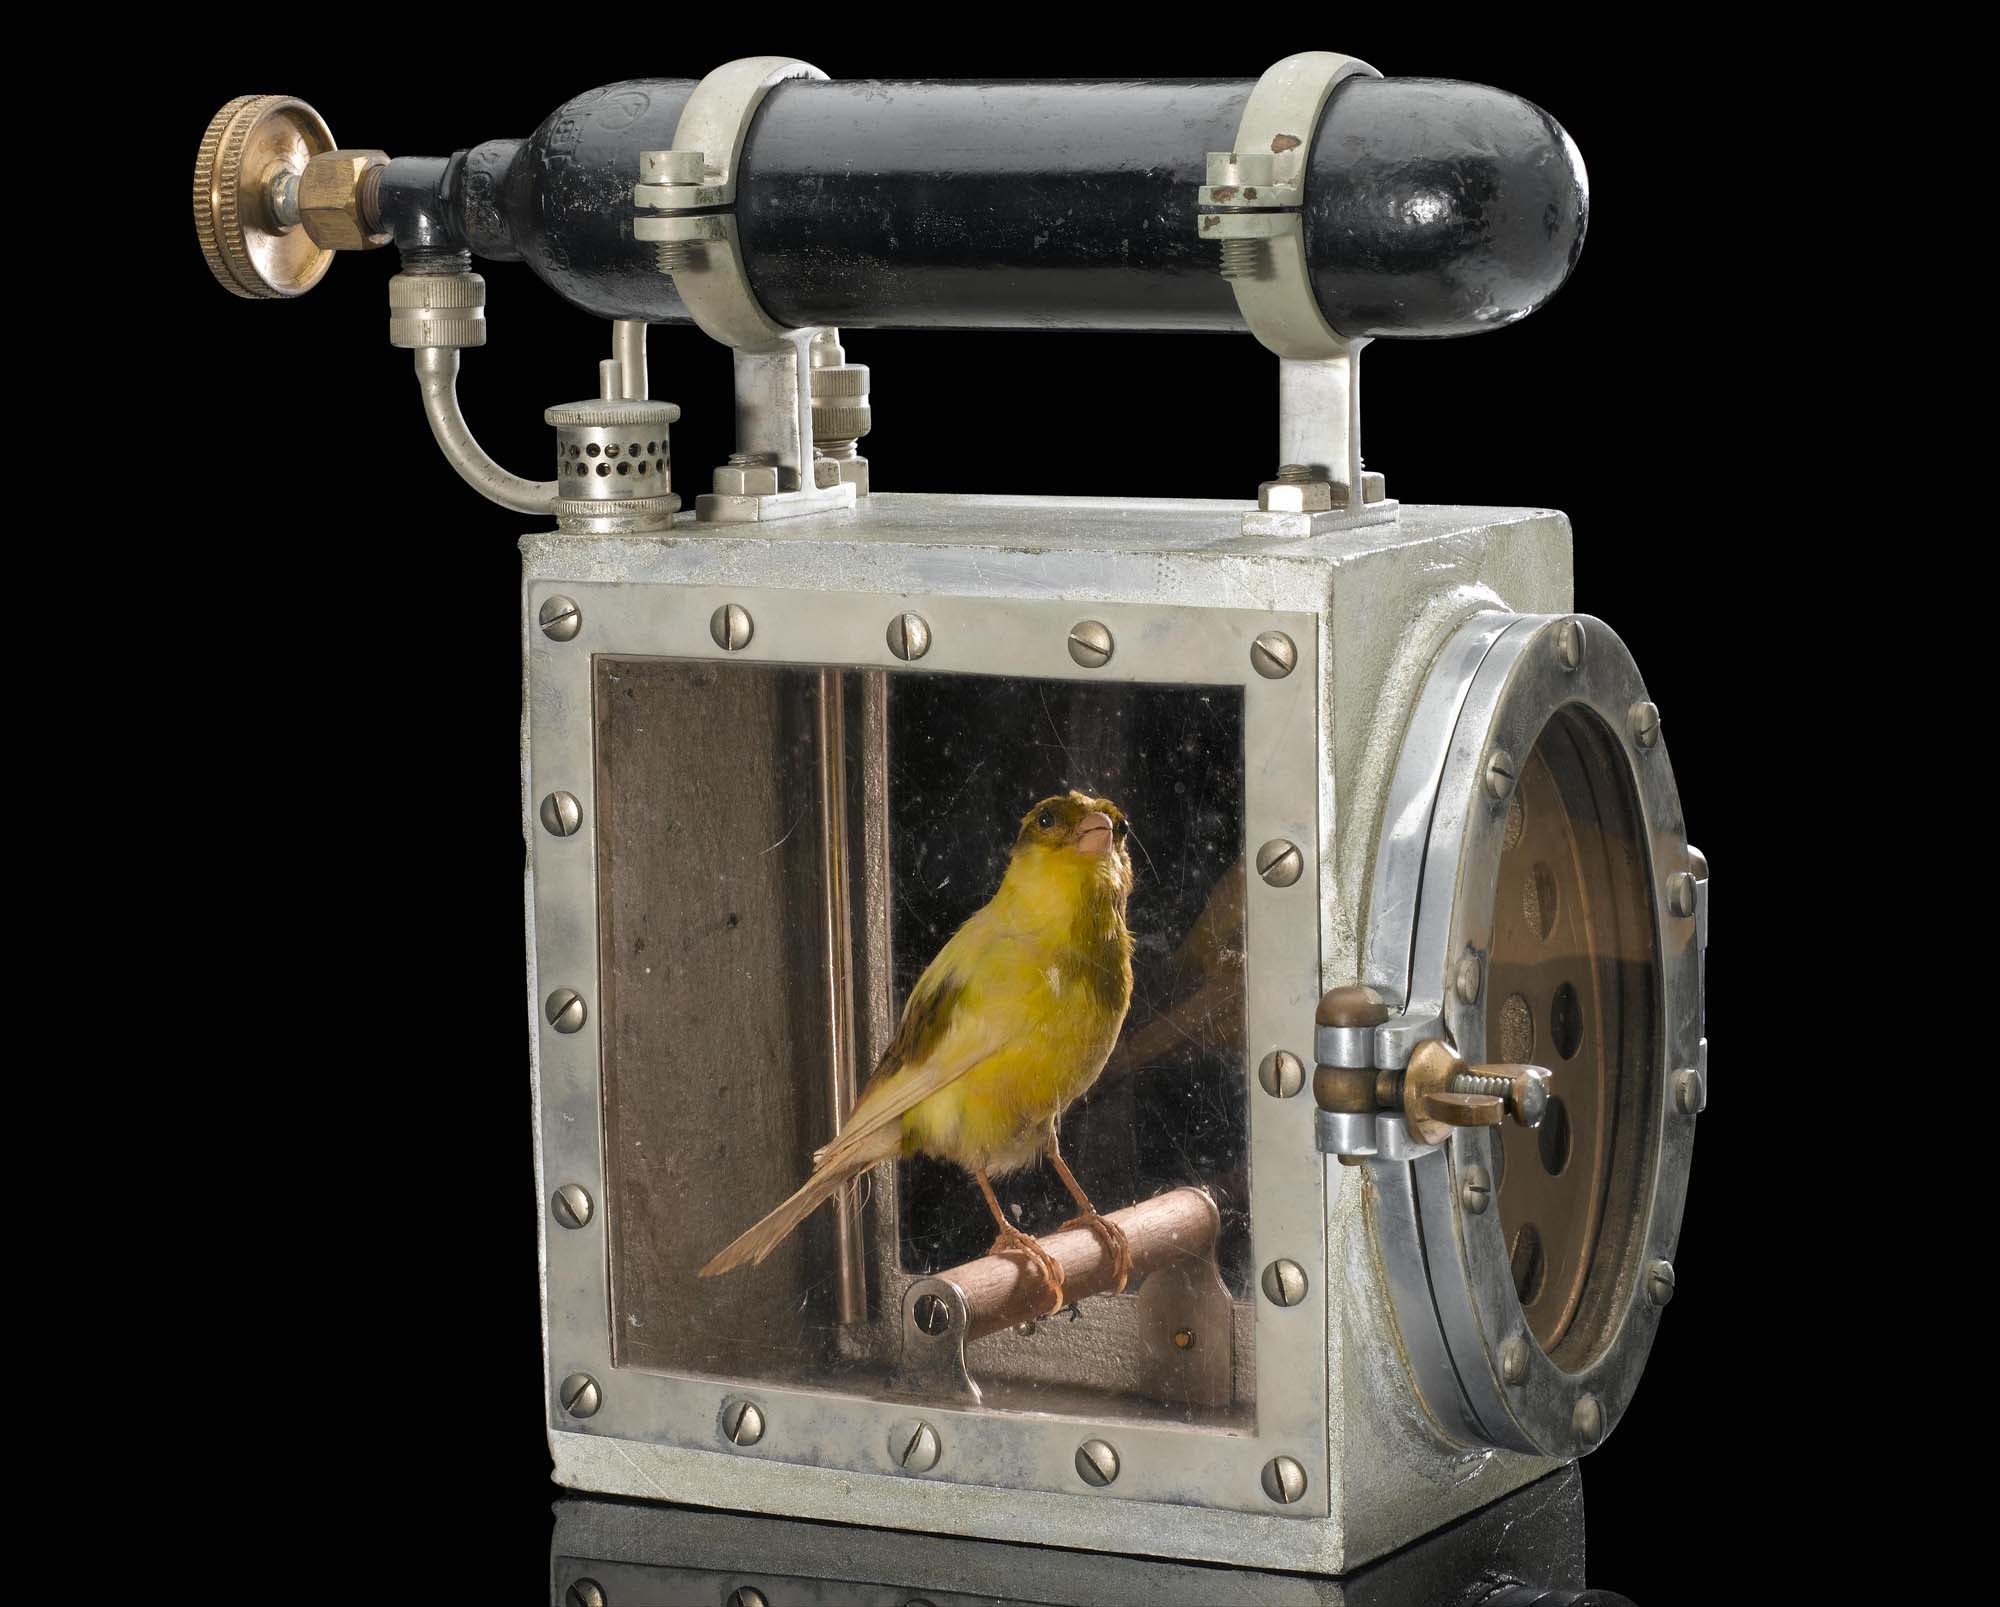 a photo of a canary inside a box with an oxygen cylinder on top of it